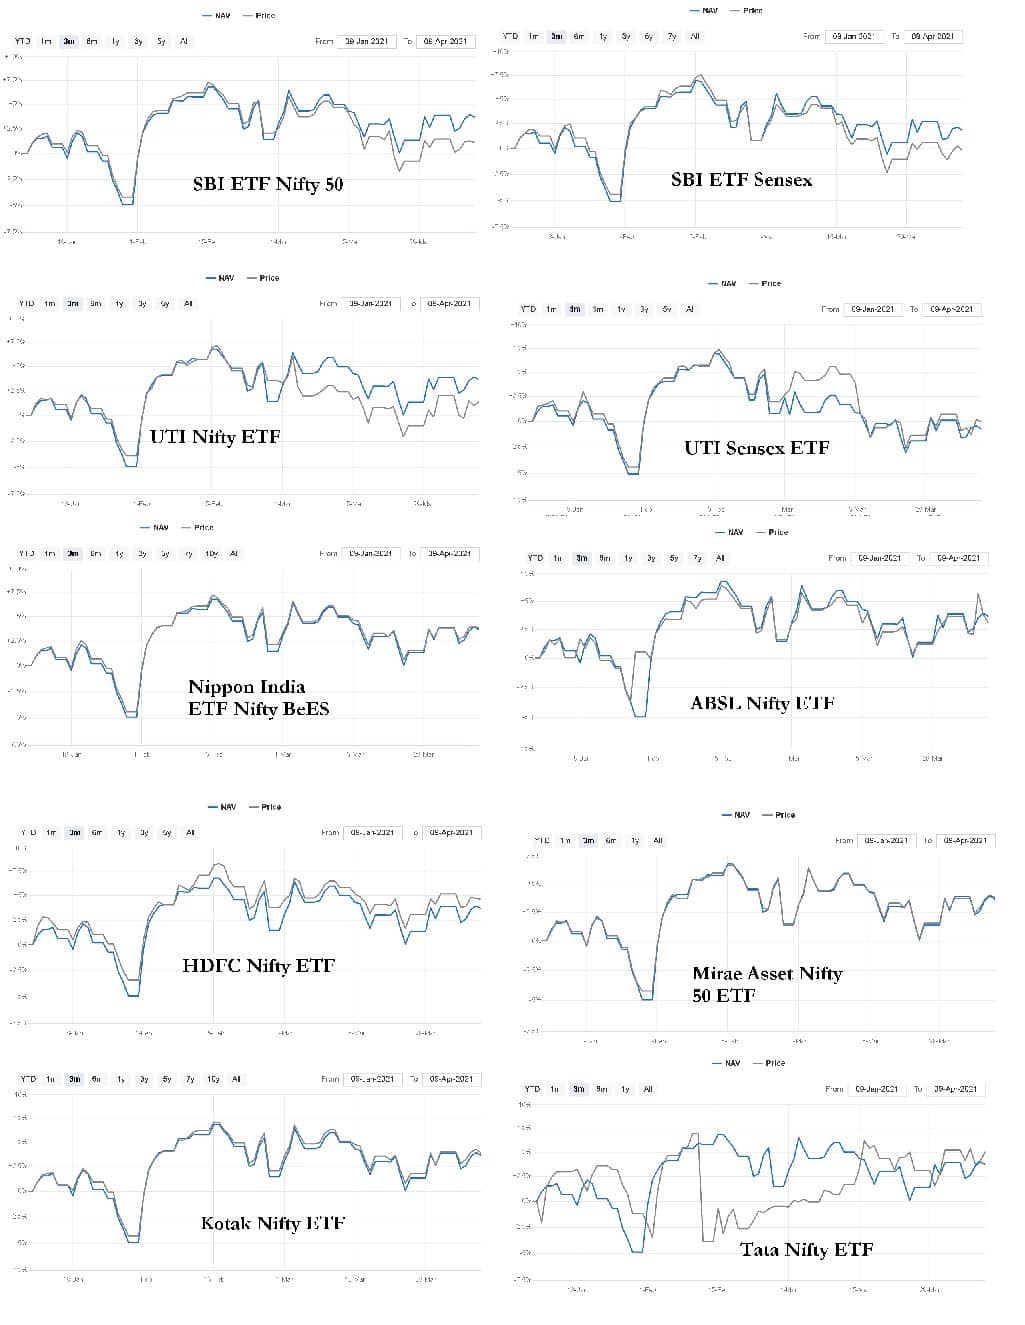 Price NAV deviations of a few Nifty and Sensex ETFs over the last three months